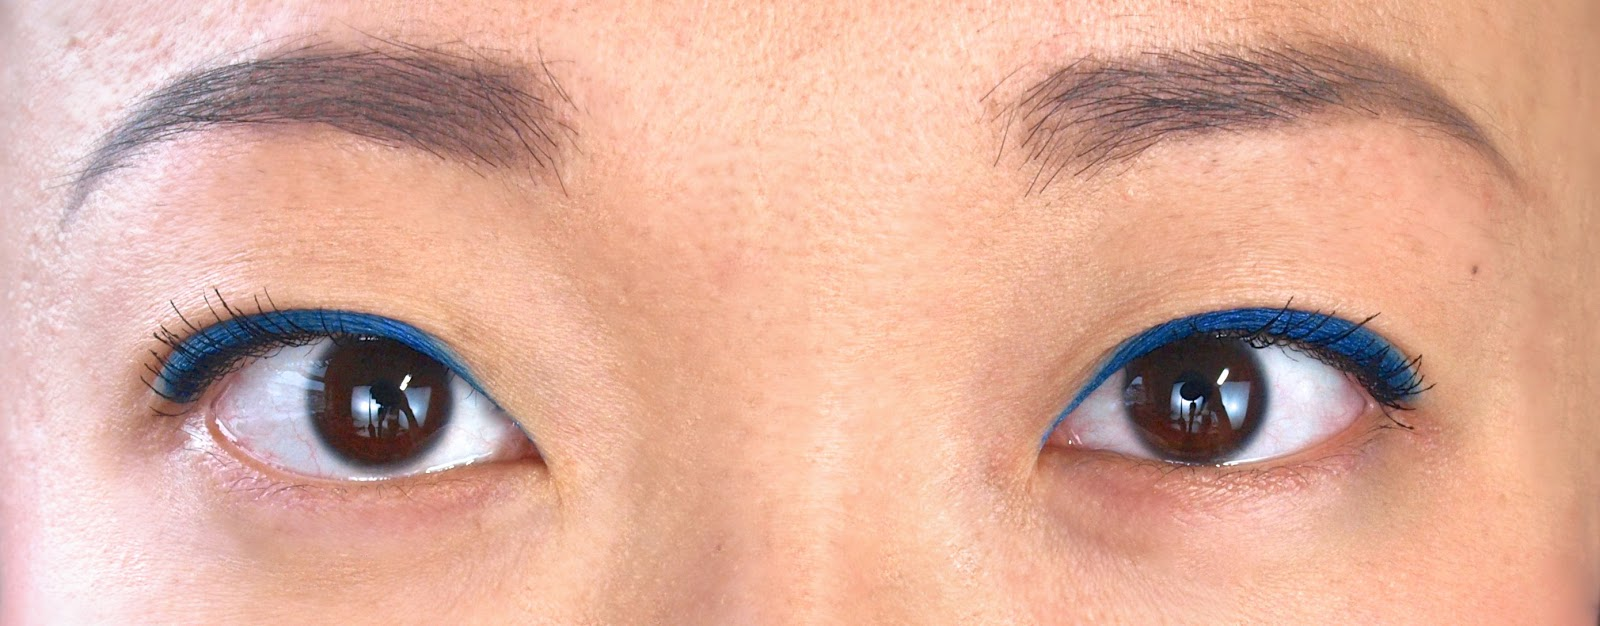 Make Up For Ever Aqua Smoky Extravagant Waterproof Mascara: Review and Swatches